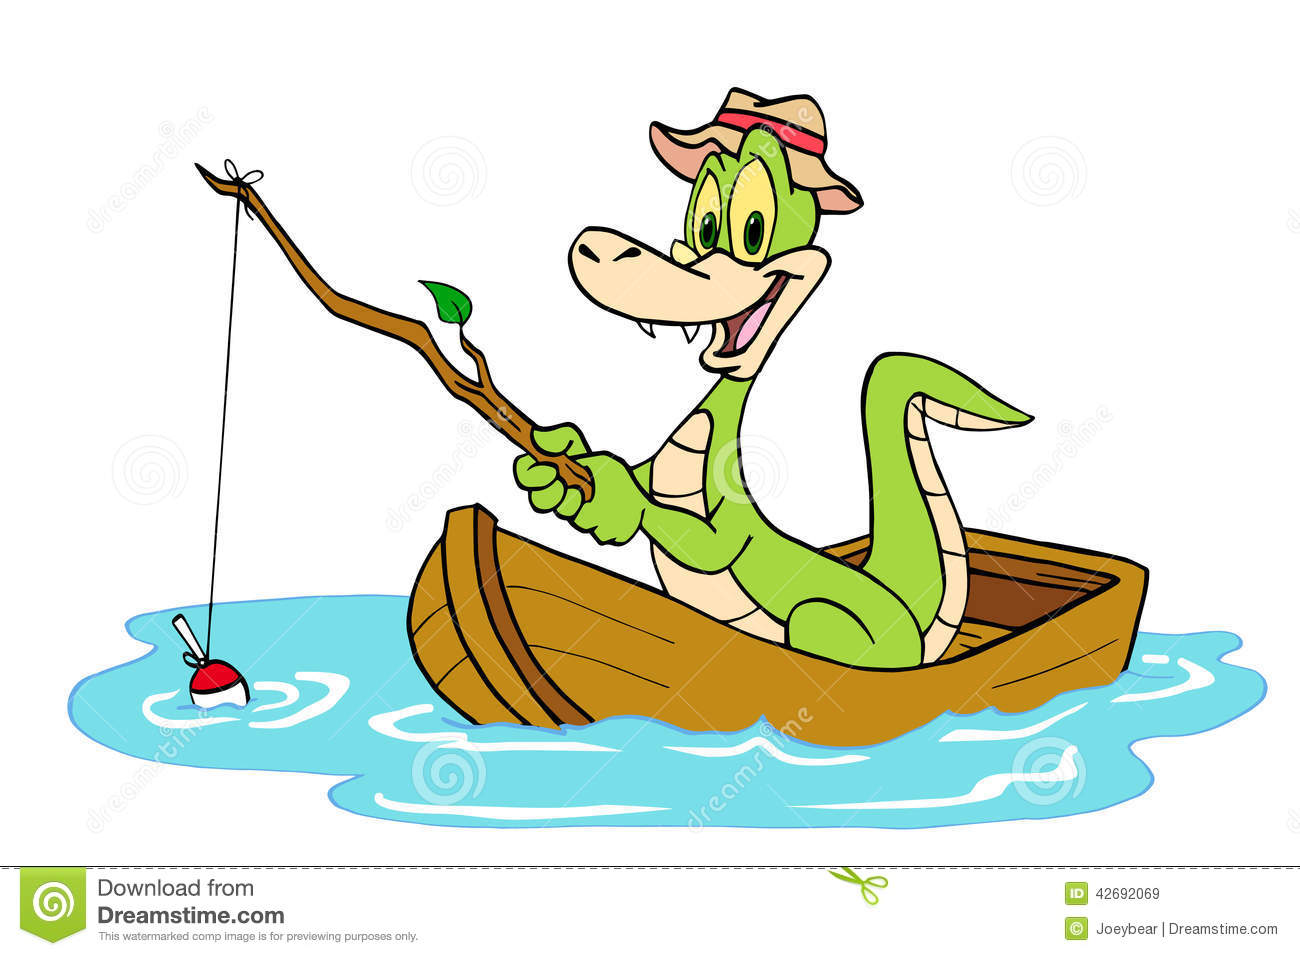 Fishing Alligator Stock Illustration - Image: 42692069